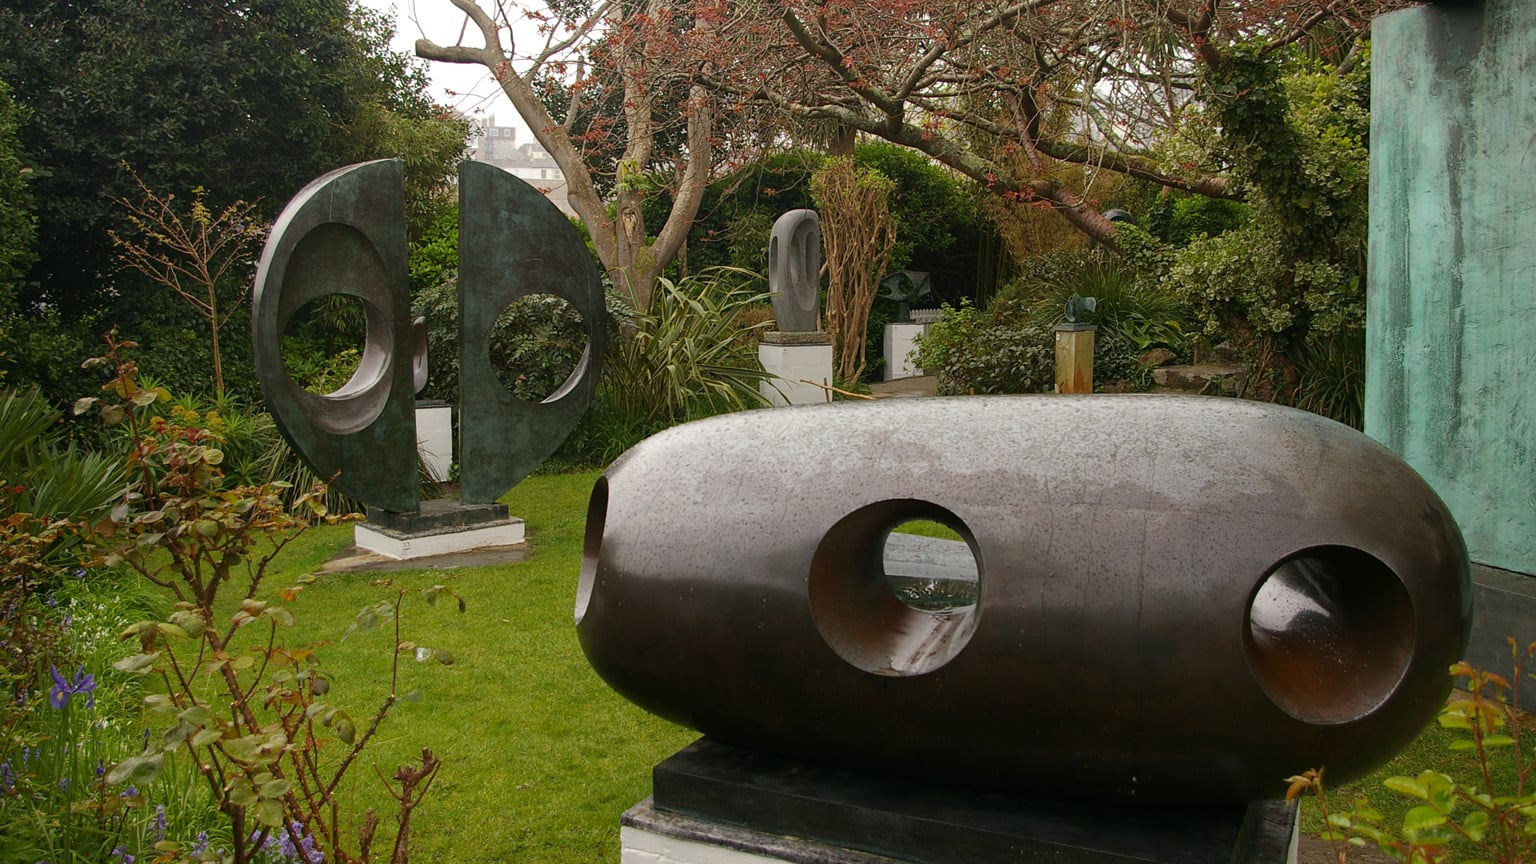 2. The Barbara Hepworth Museum - 50% off entry with National Art Pass